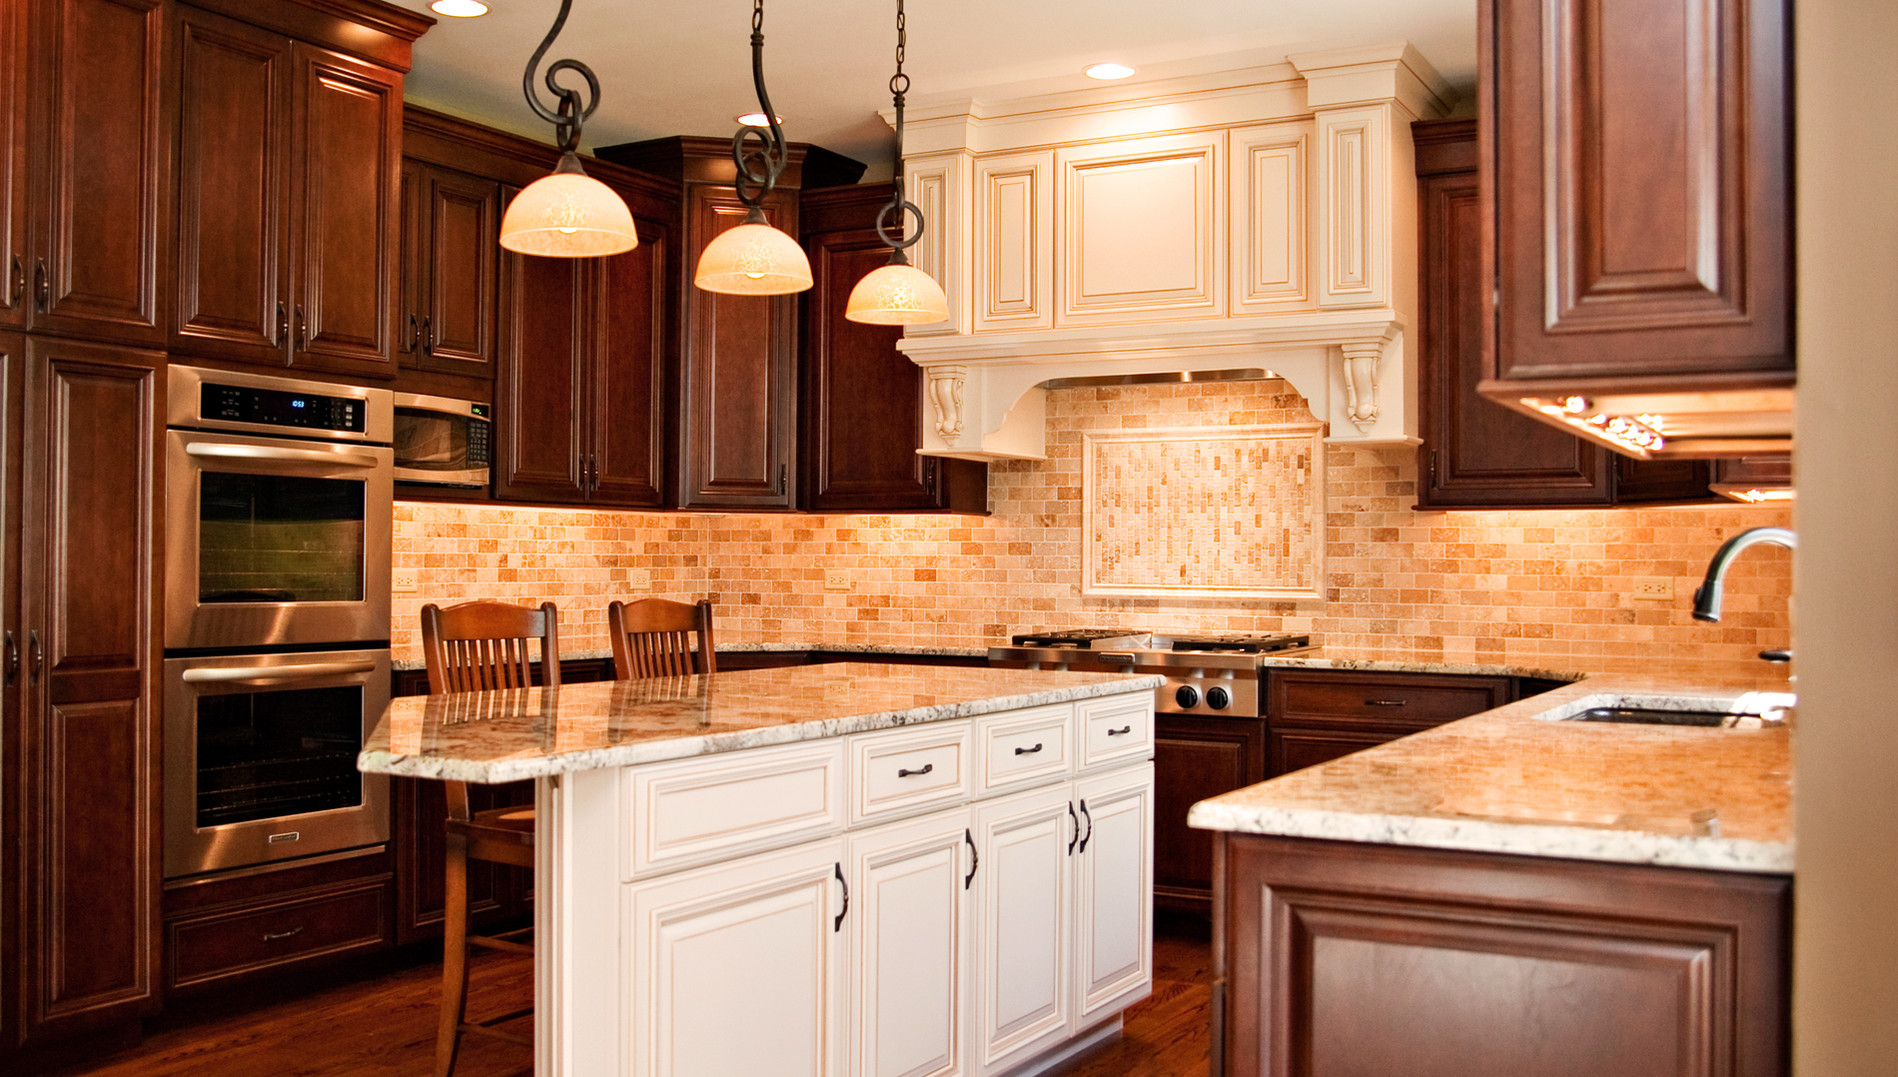 Wood Kitchen Cabinets With Painted Island A Blend Of White And Wood In Aurora